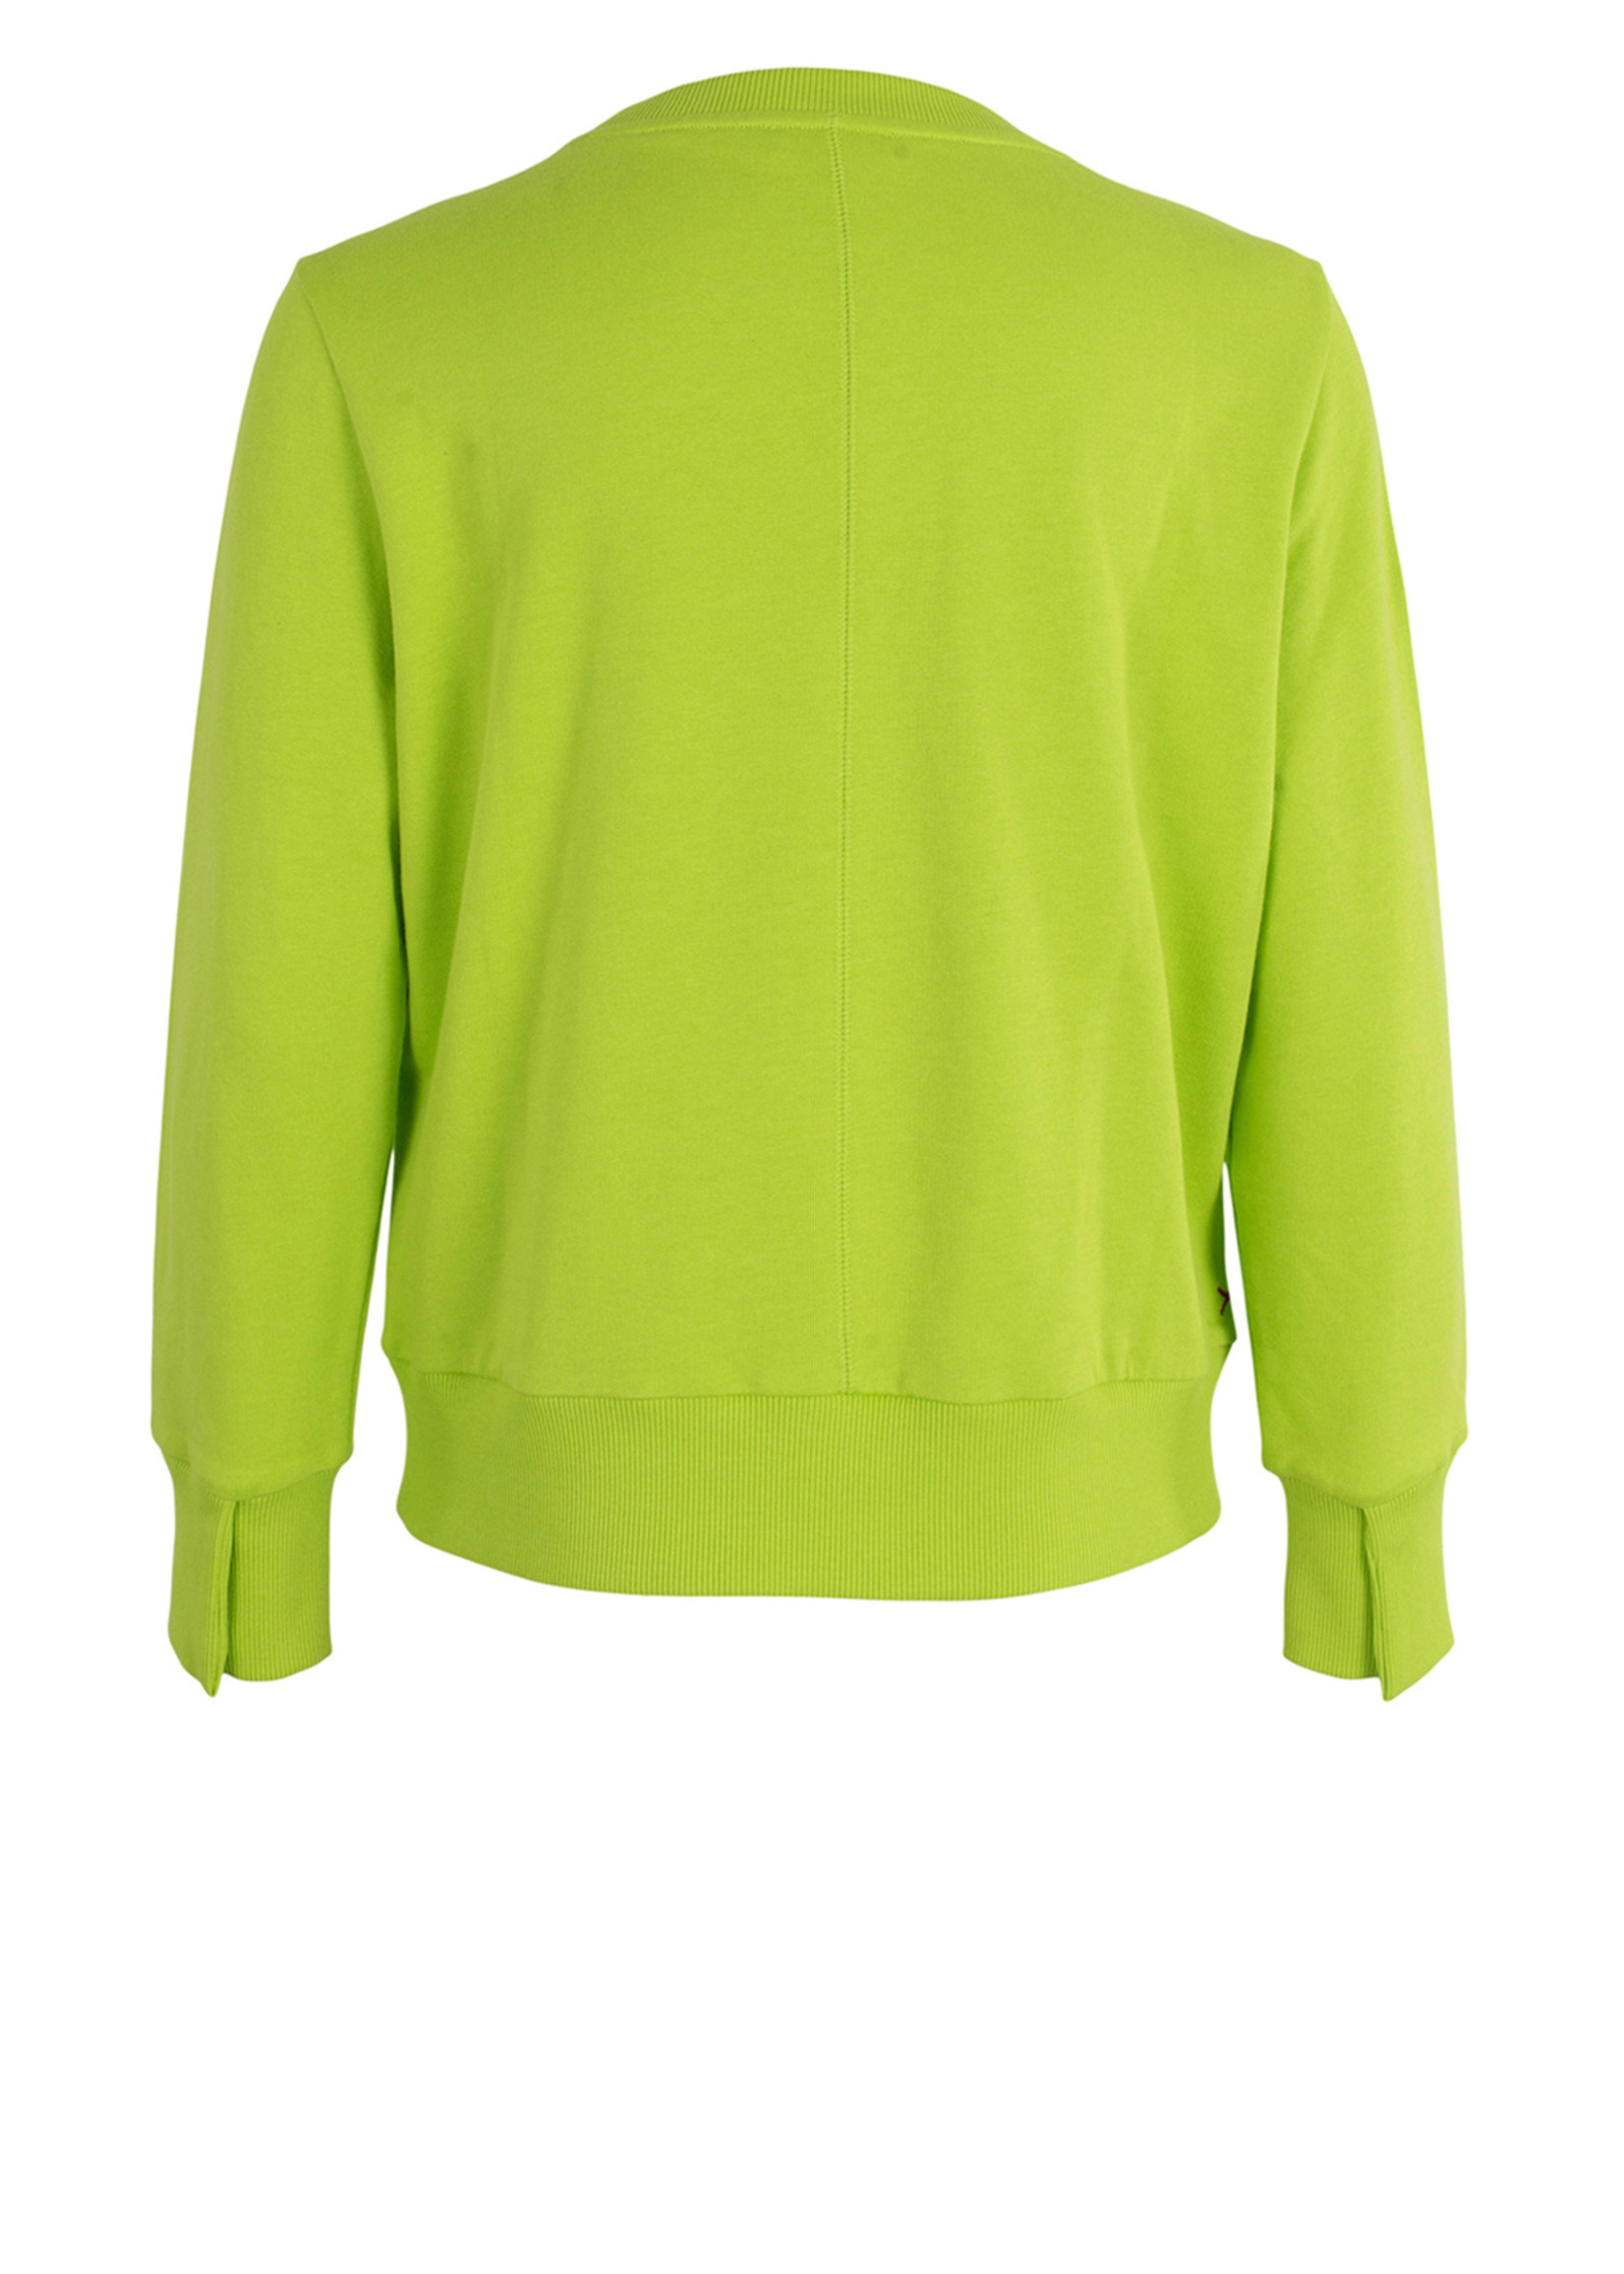 Anna Blue SWEATER Fluor Yellow Solid